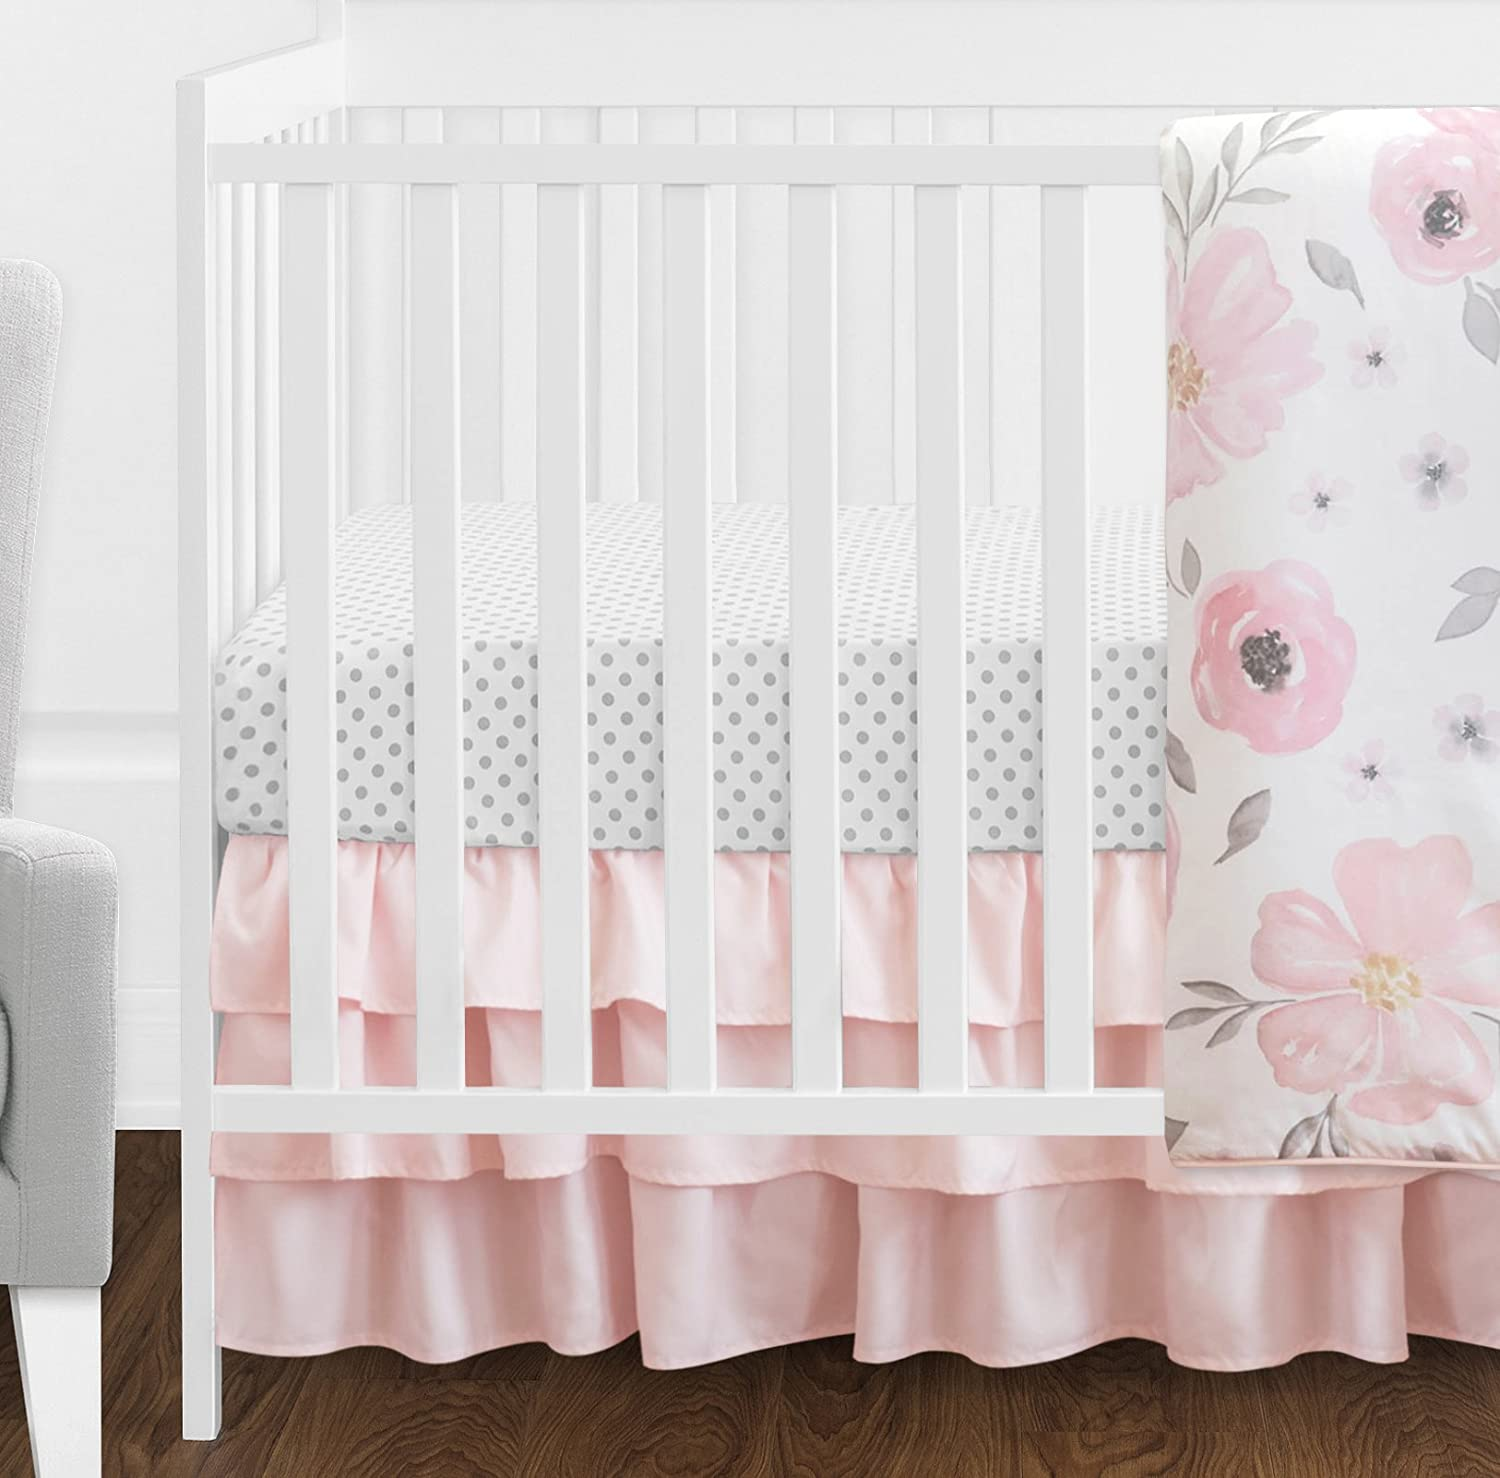 8 pc cot //cot bed bedding sets PILLOW BUMPER CASES pink grey stars white